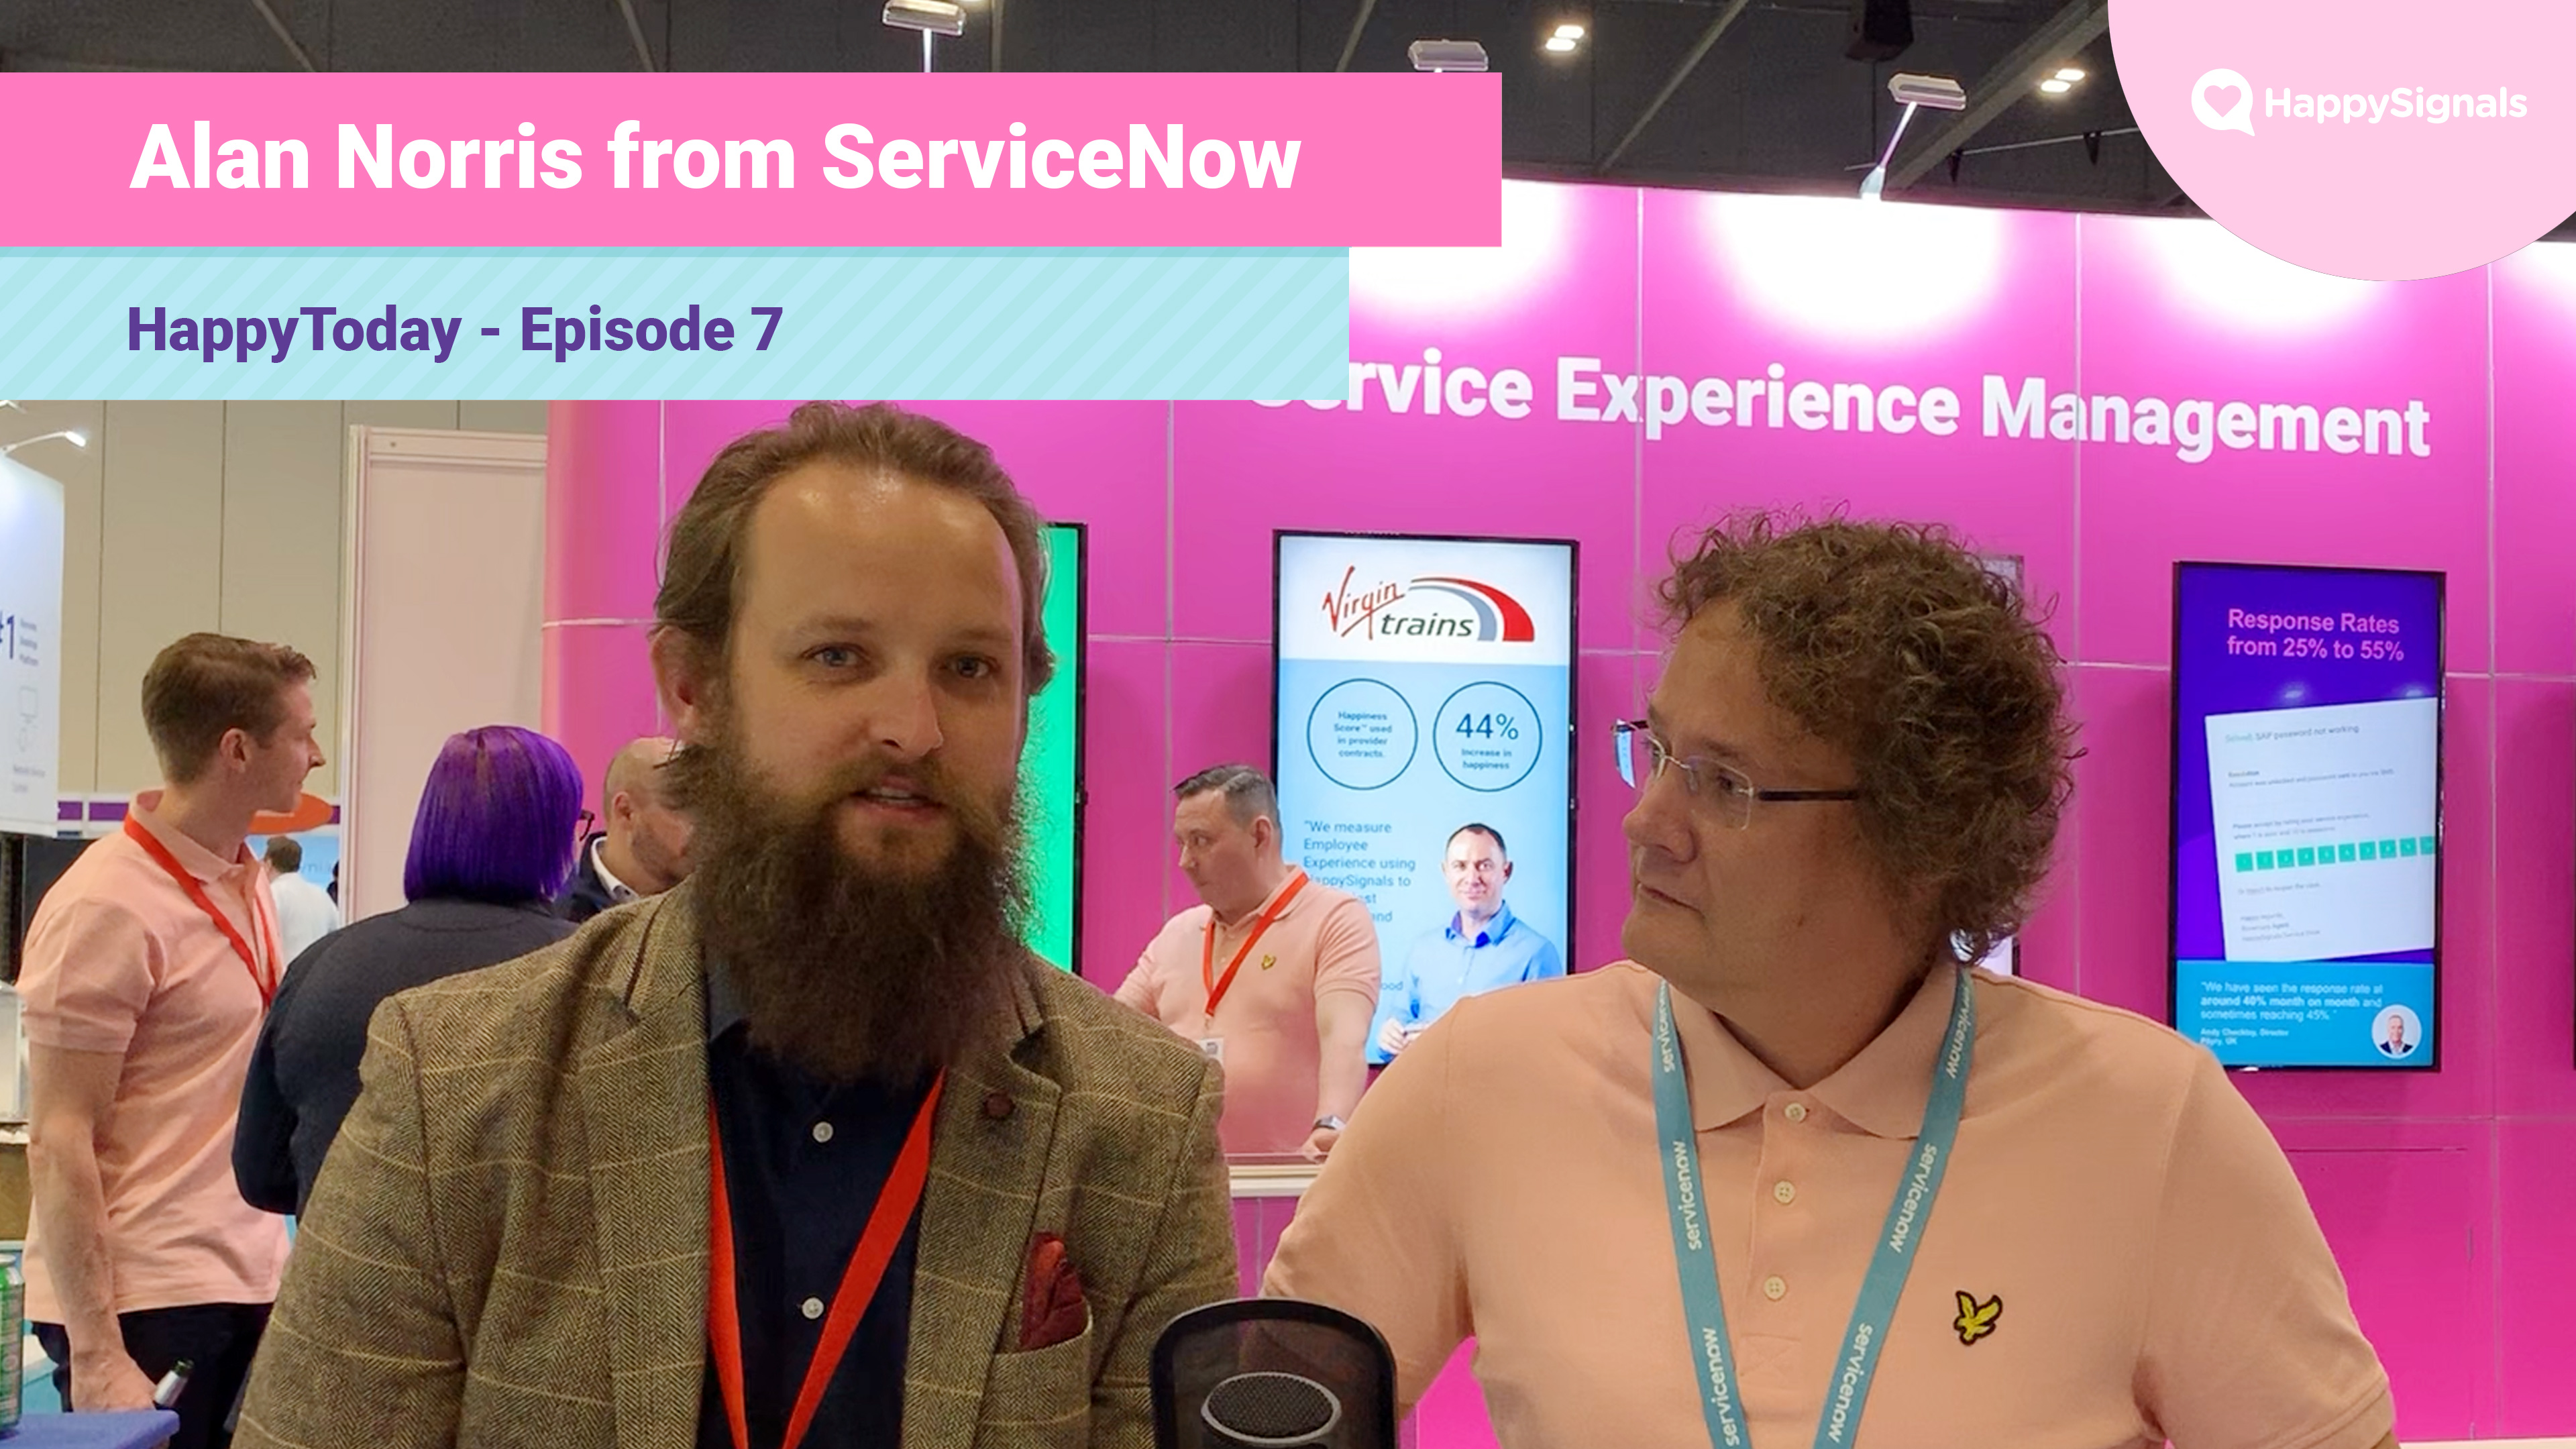 8. Interview with Alan Norris from ServiceNow